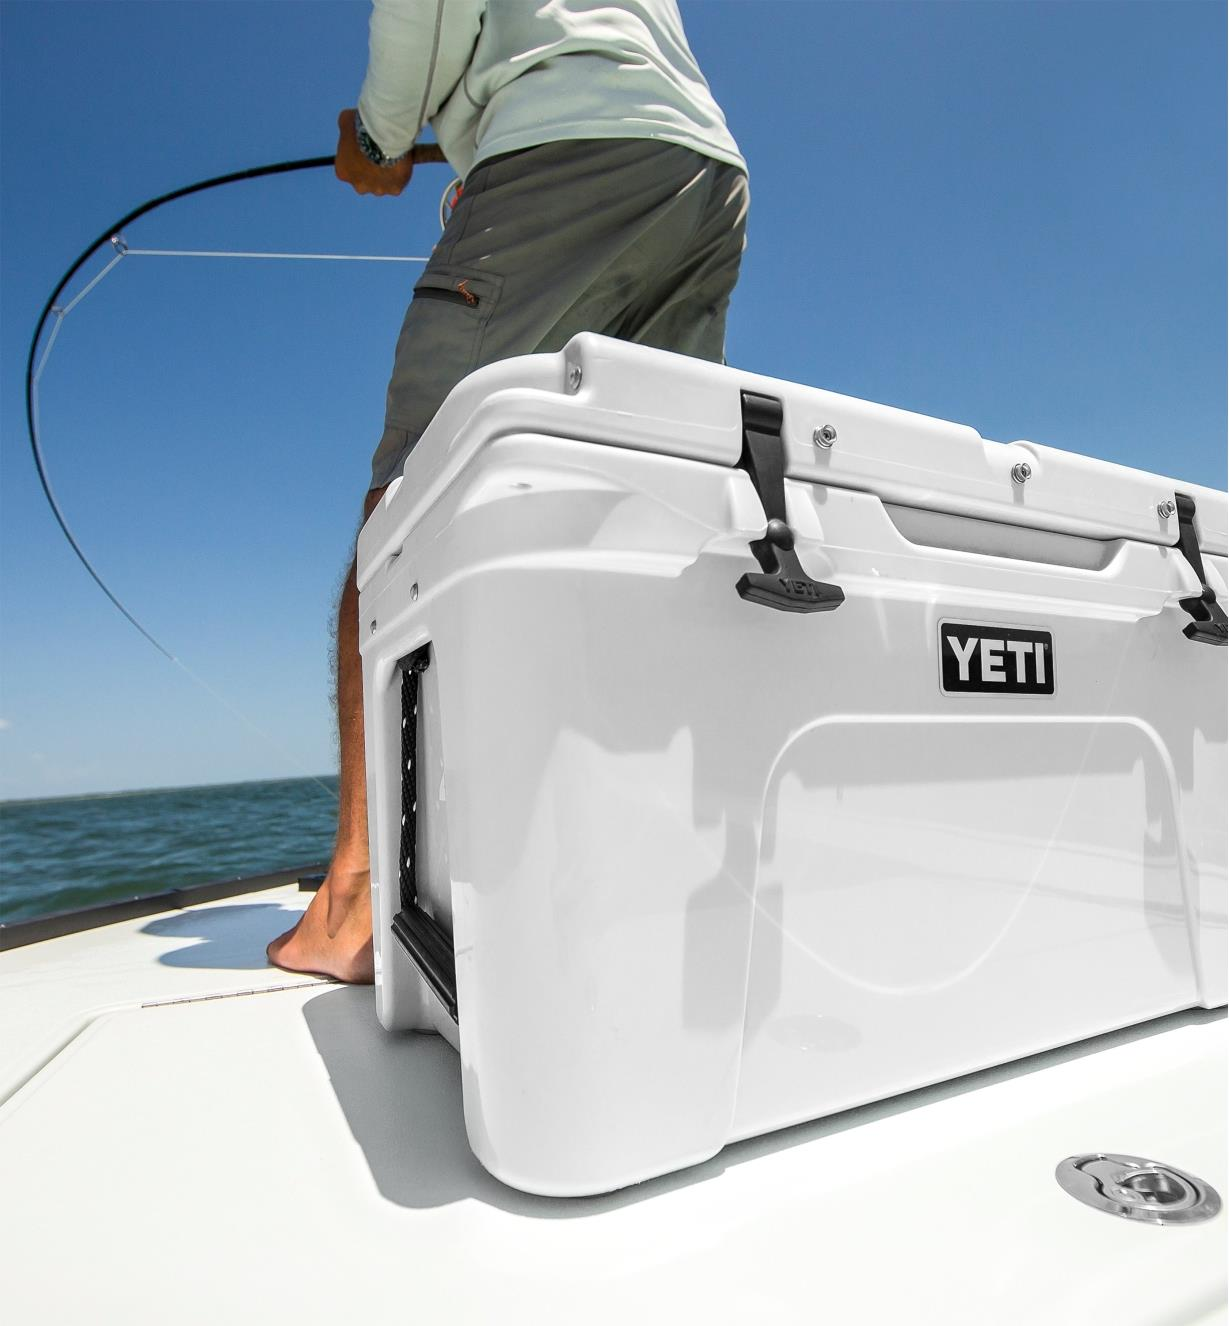 A Yeti cooler sits on boat deck with a man fishing in the background